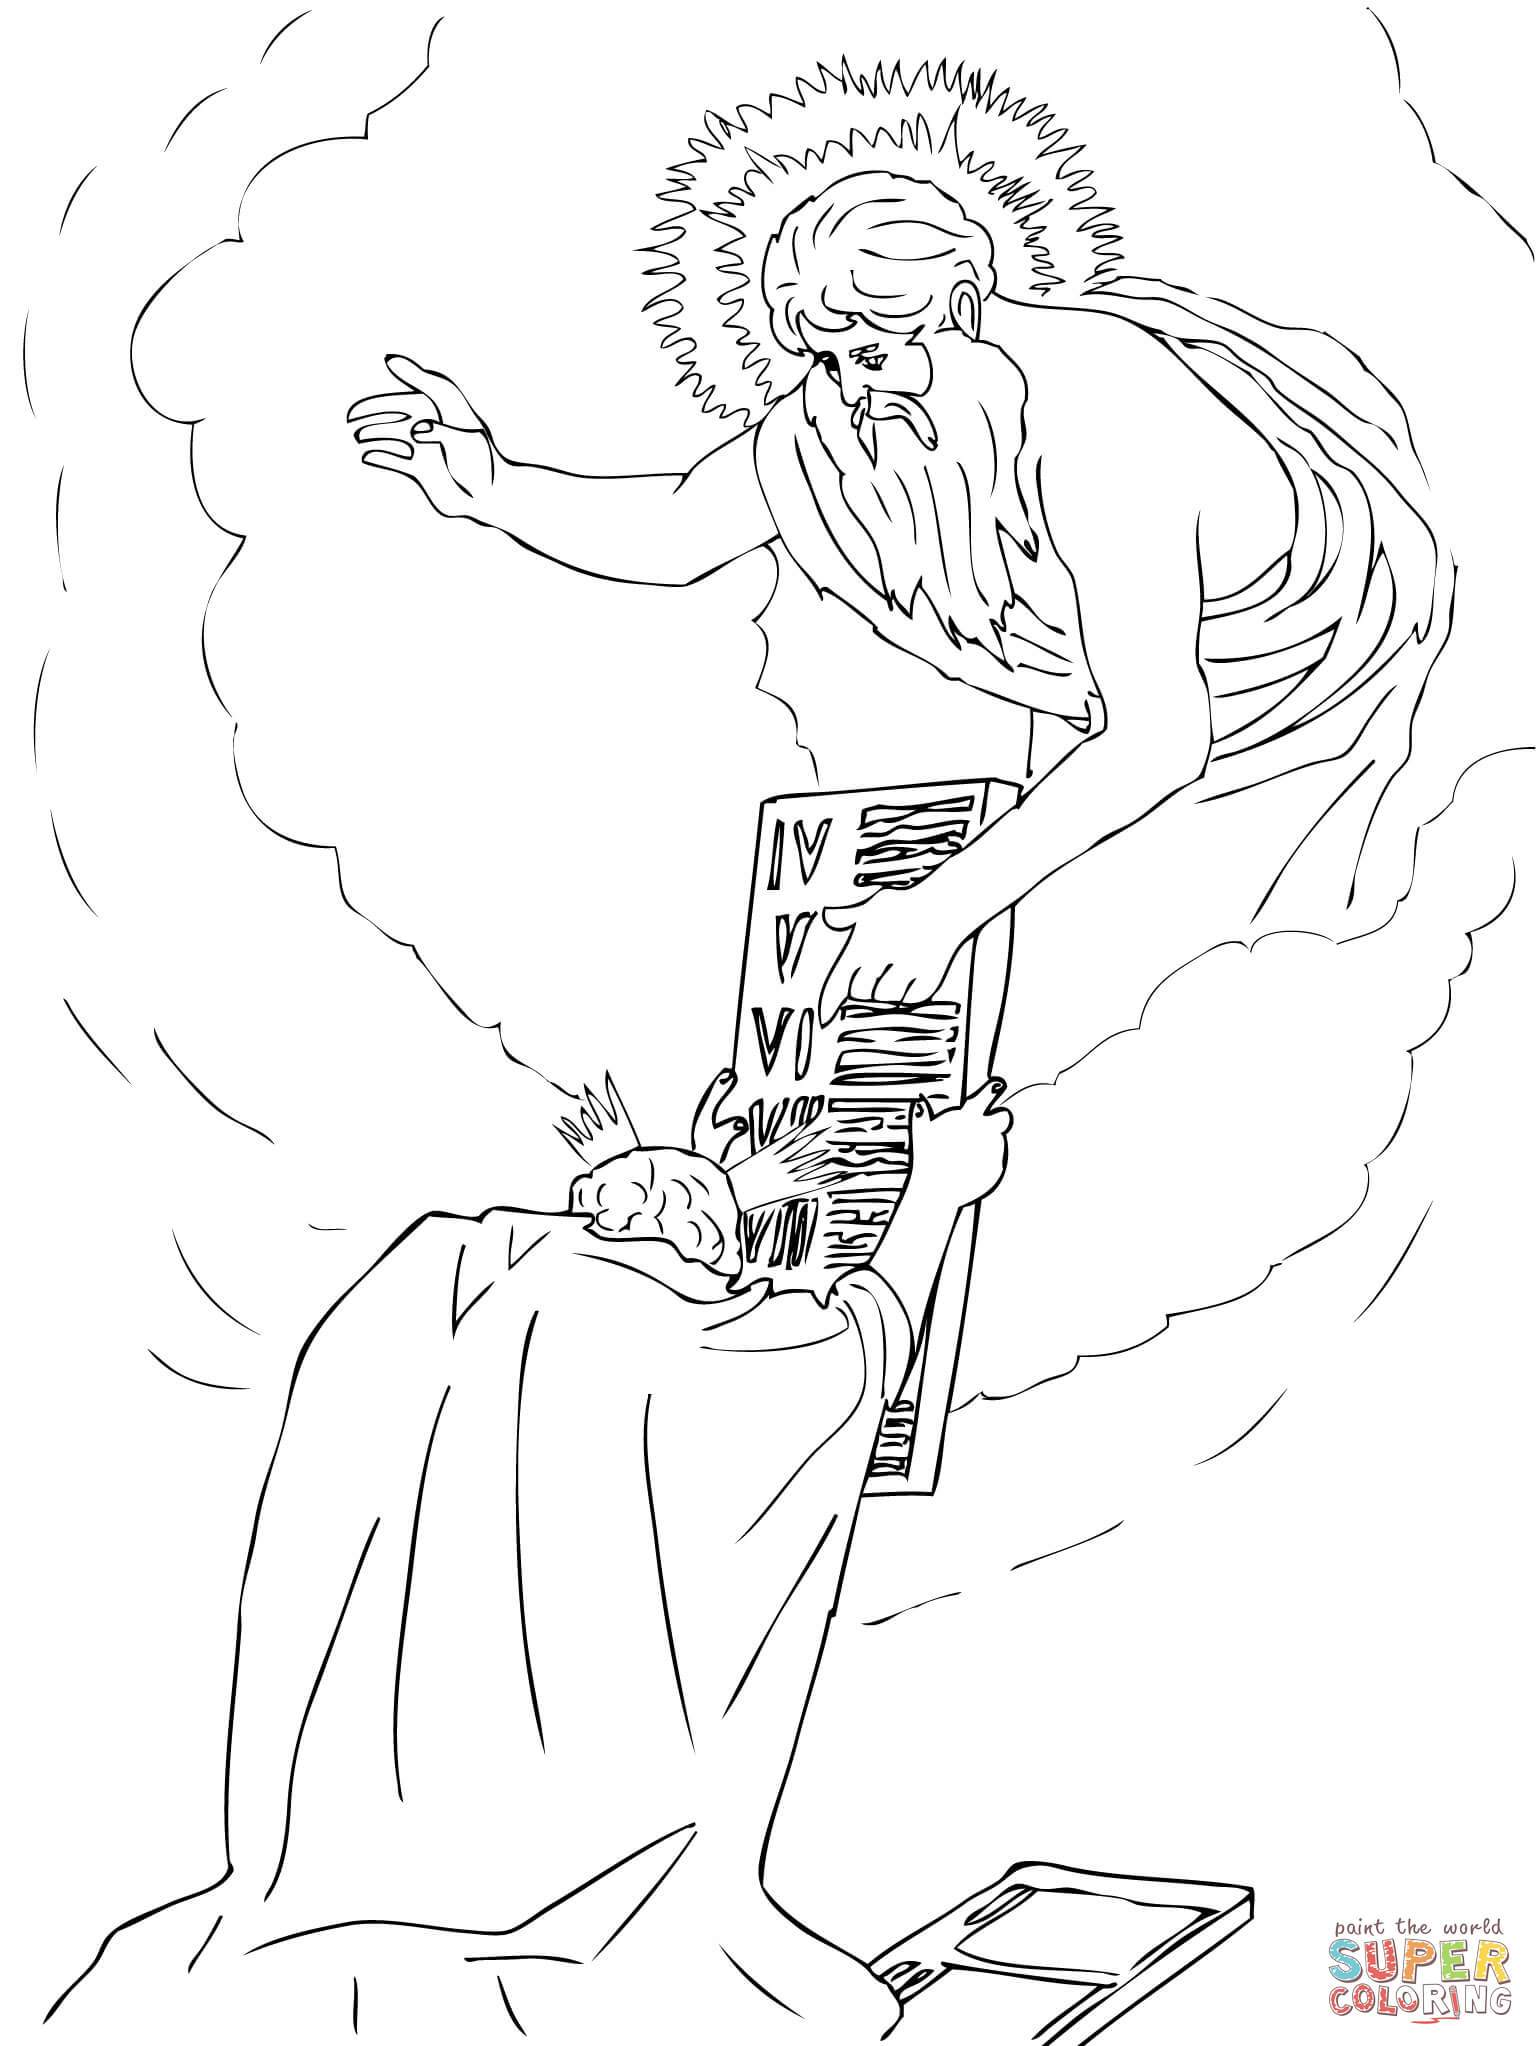 Moses Ten Commandments Coloring Pages At Getcolorings